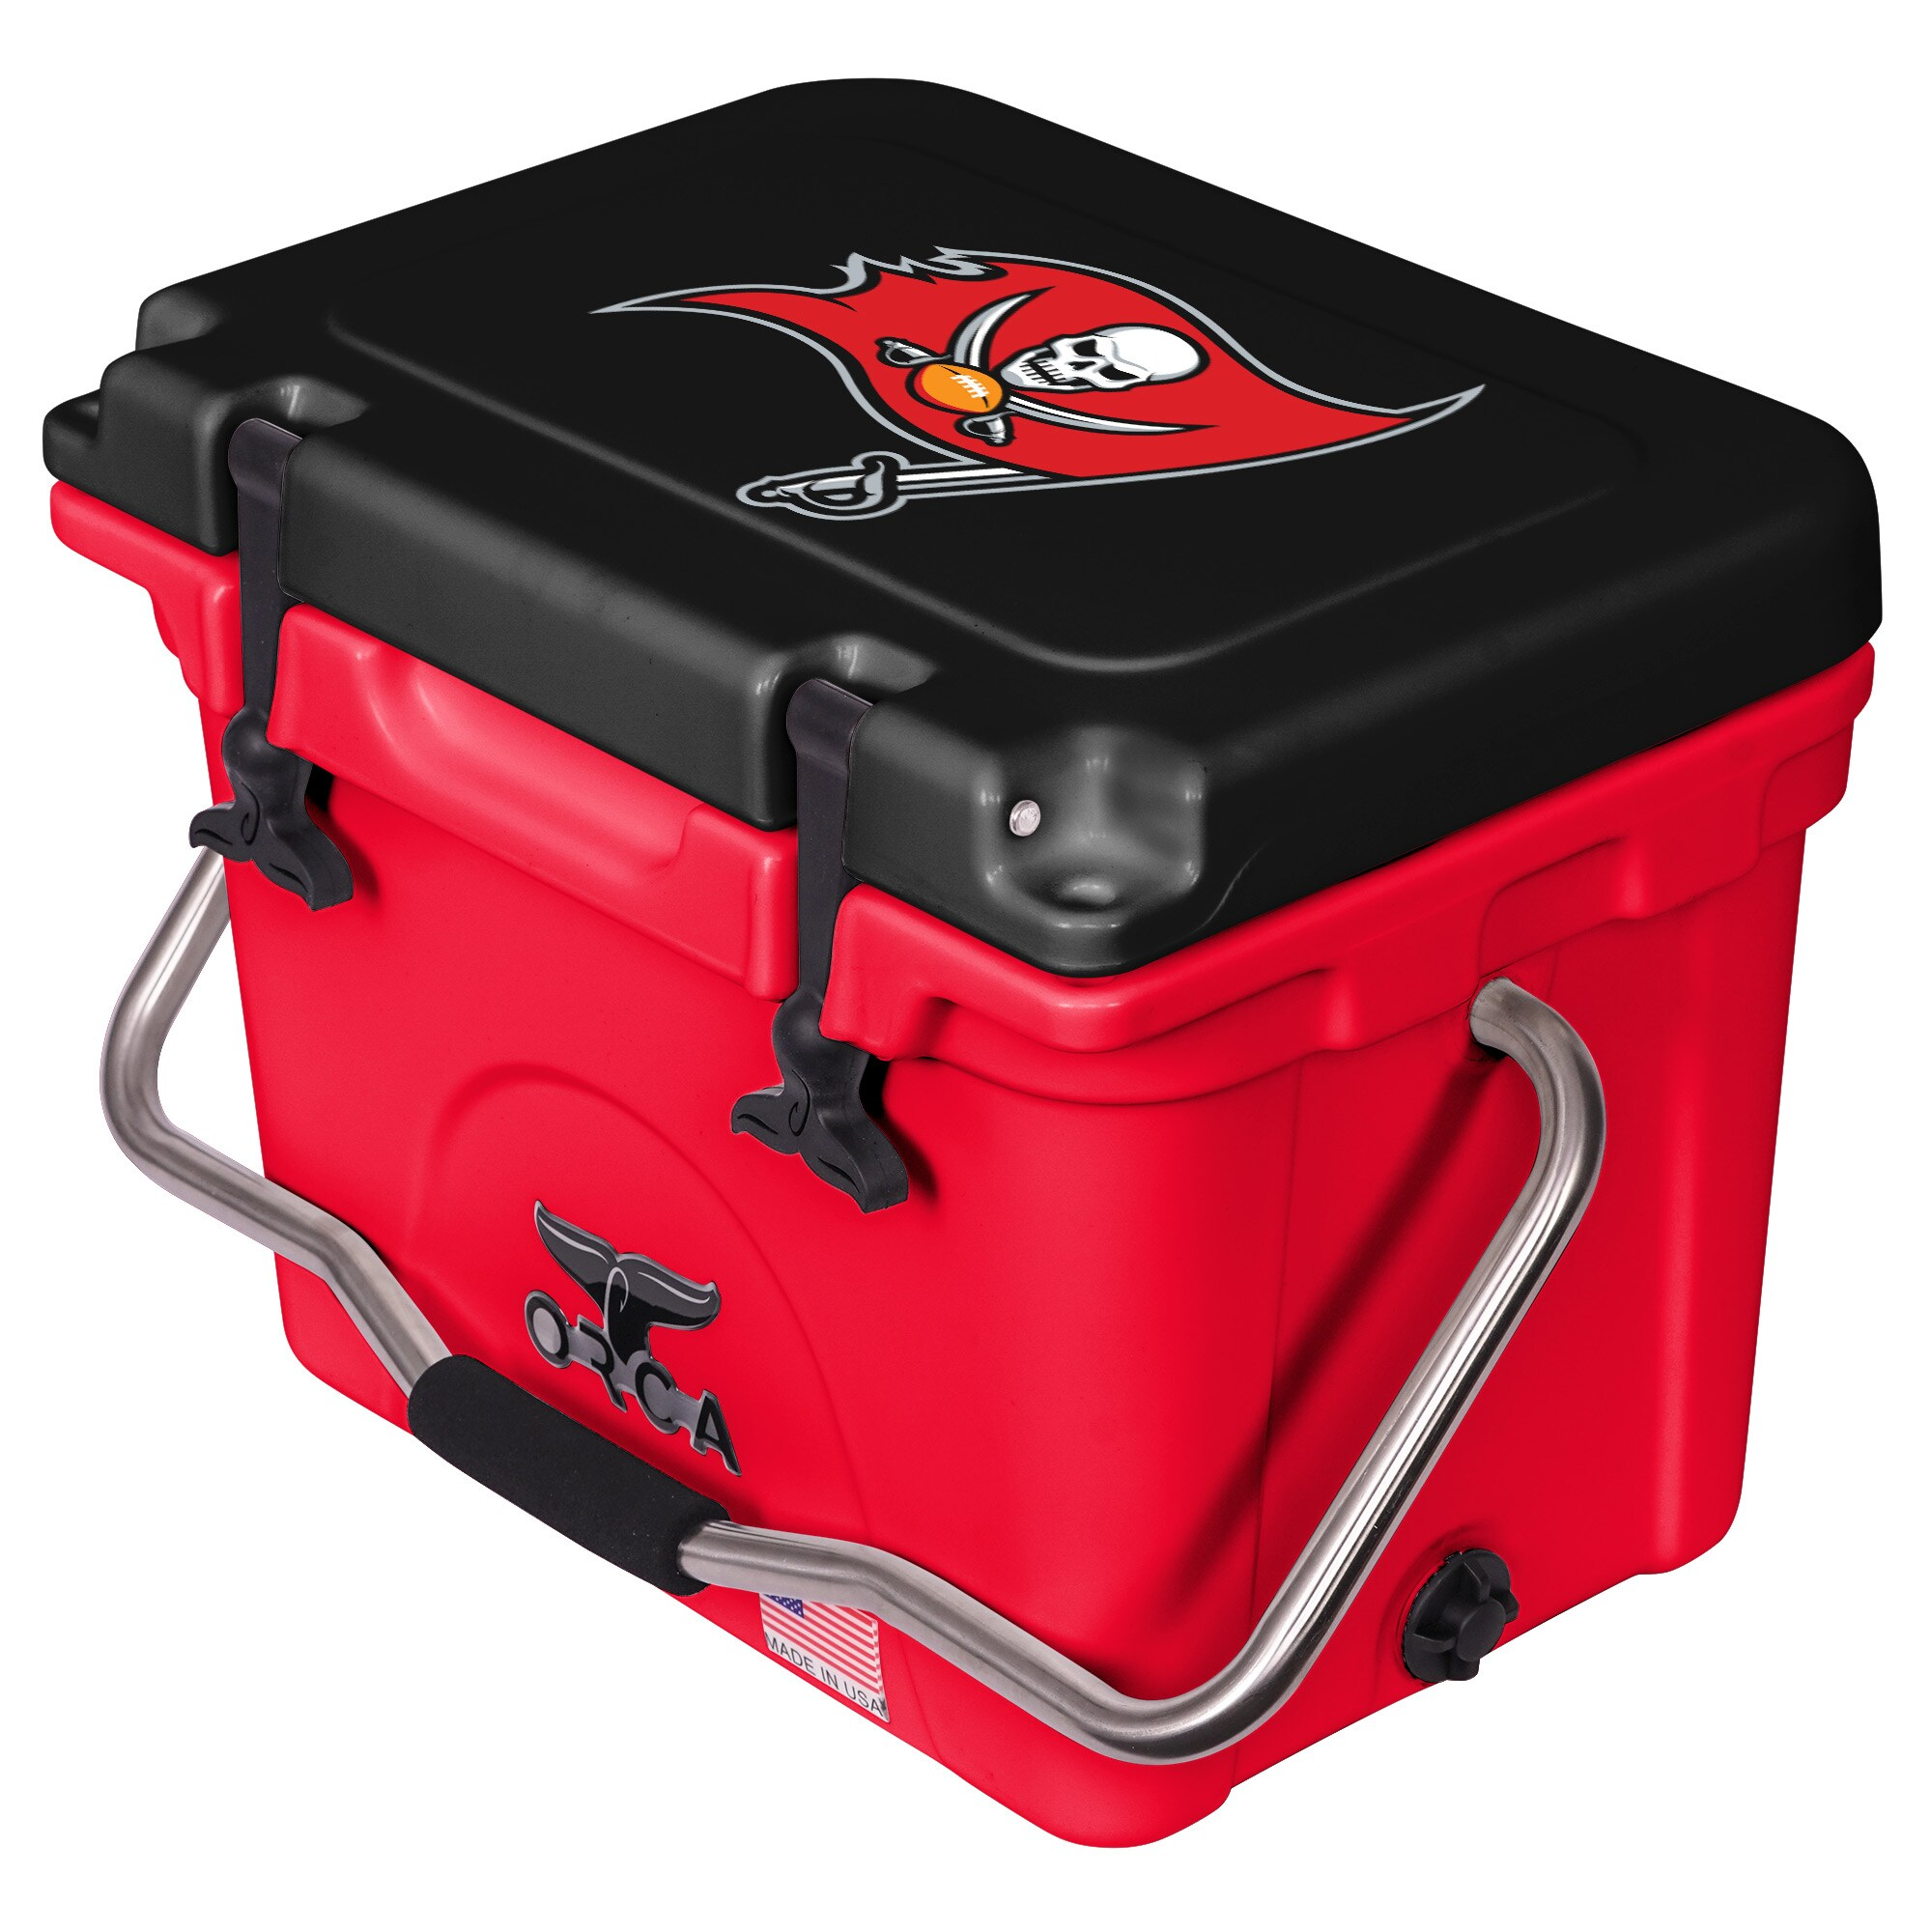 Tampa Bay Buccaneers ORCA 20-Quart Hard-Sided Cooler - Red/Black